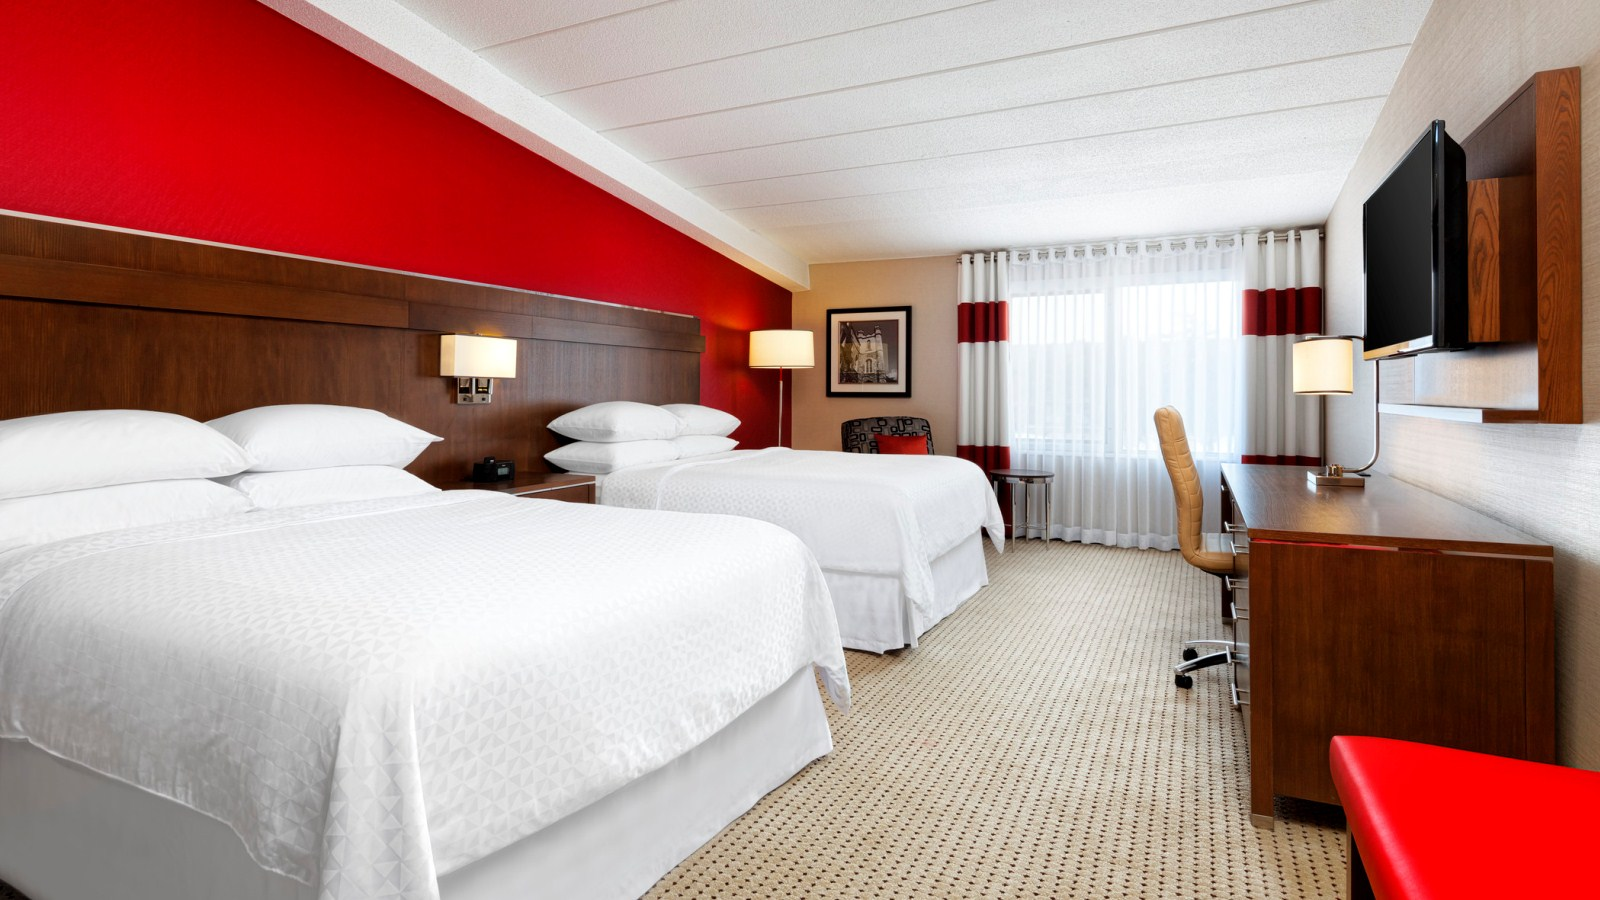 superior2queenguestroom.jpg